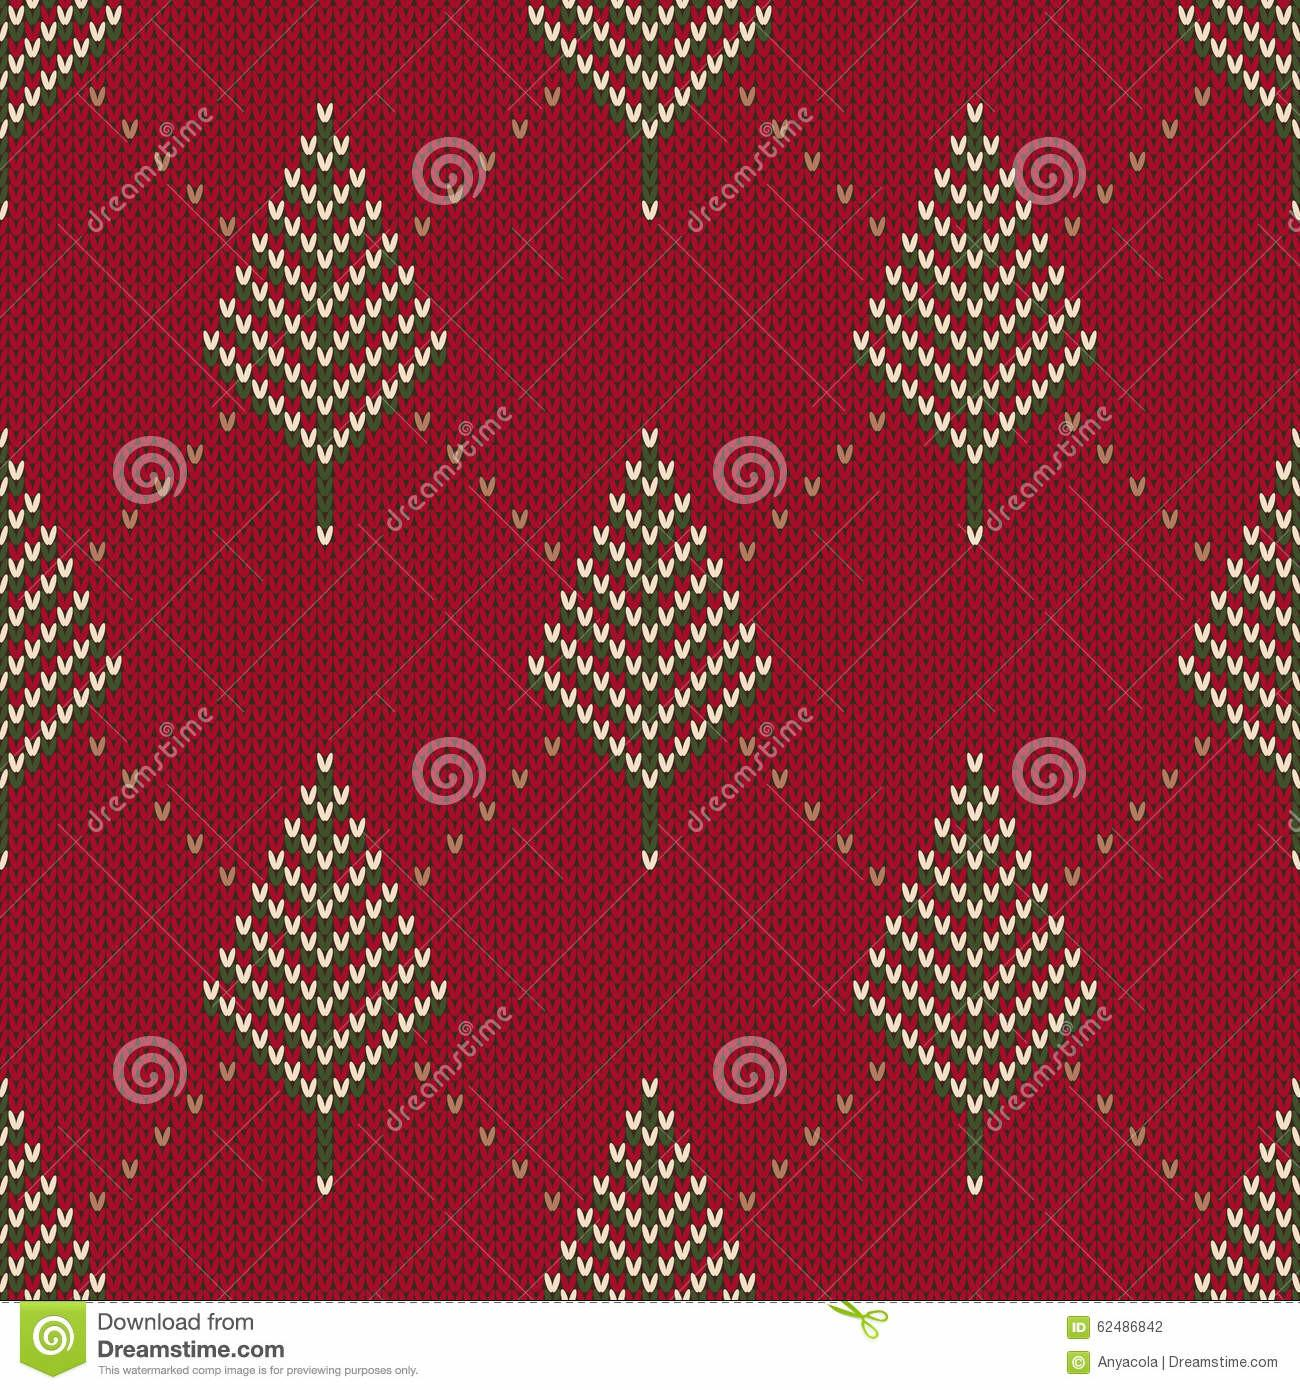 Winter Holiday Sweater Design Seamless Knitted Pattern